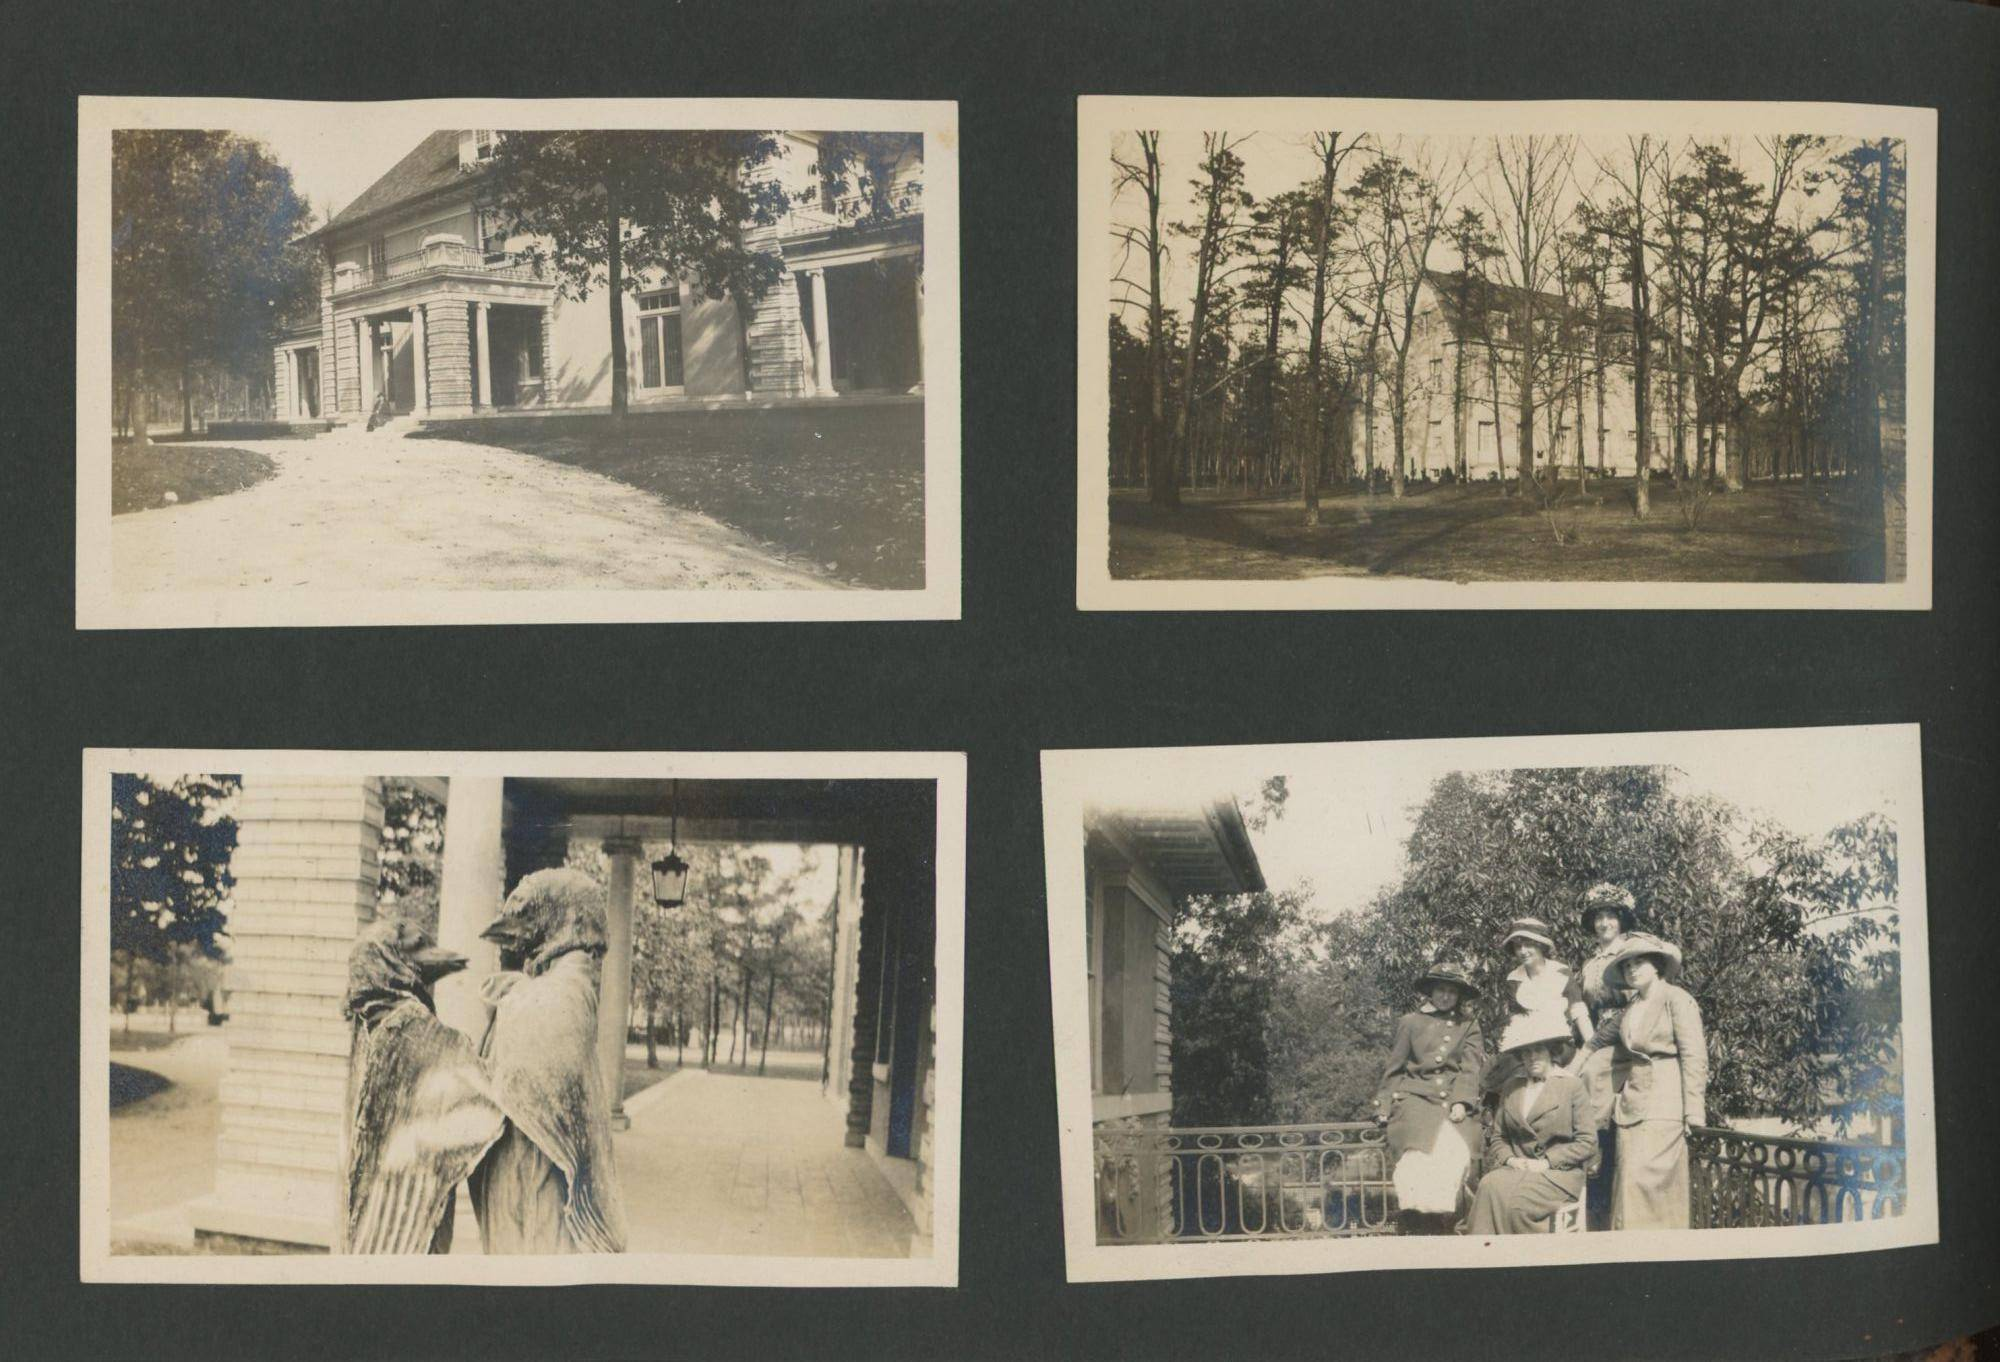 AFFECTIONATE WOMEN, OUTDOORS, SPORTS, AND COSTUMES 1910's PHOTO ALBUM   [ ]